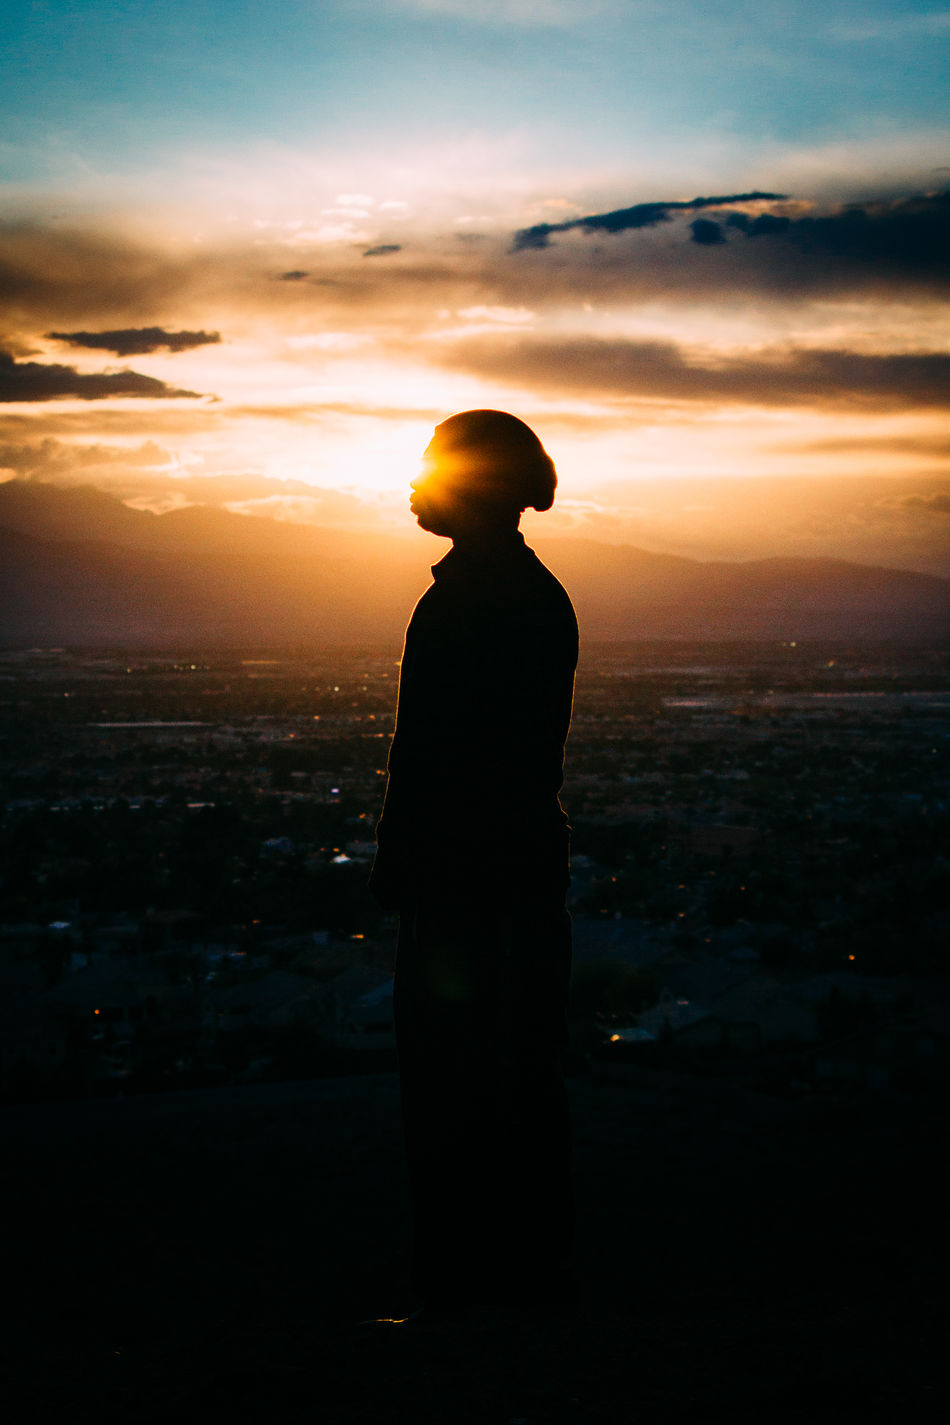 Adult Cityscape Cloud - Sky Day Evening Full Length Man Nature One Person Outdoors People Rear View Silhouette Sky Flowersshng Sunset Vertical Tranquility Tranquil Scene Single Magic Hour Dark Light